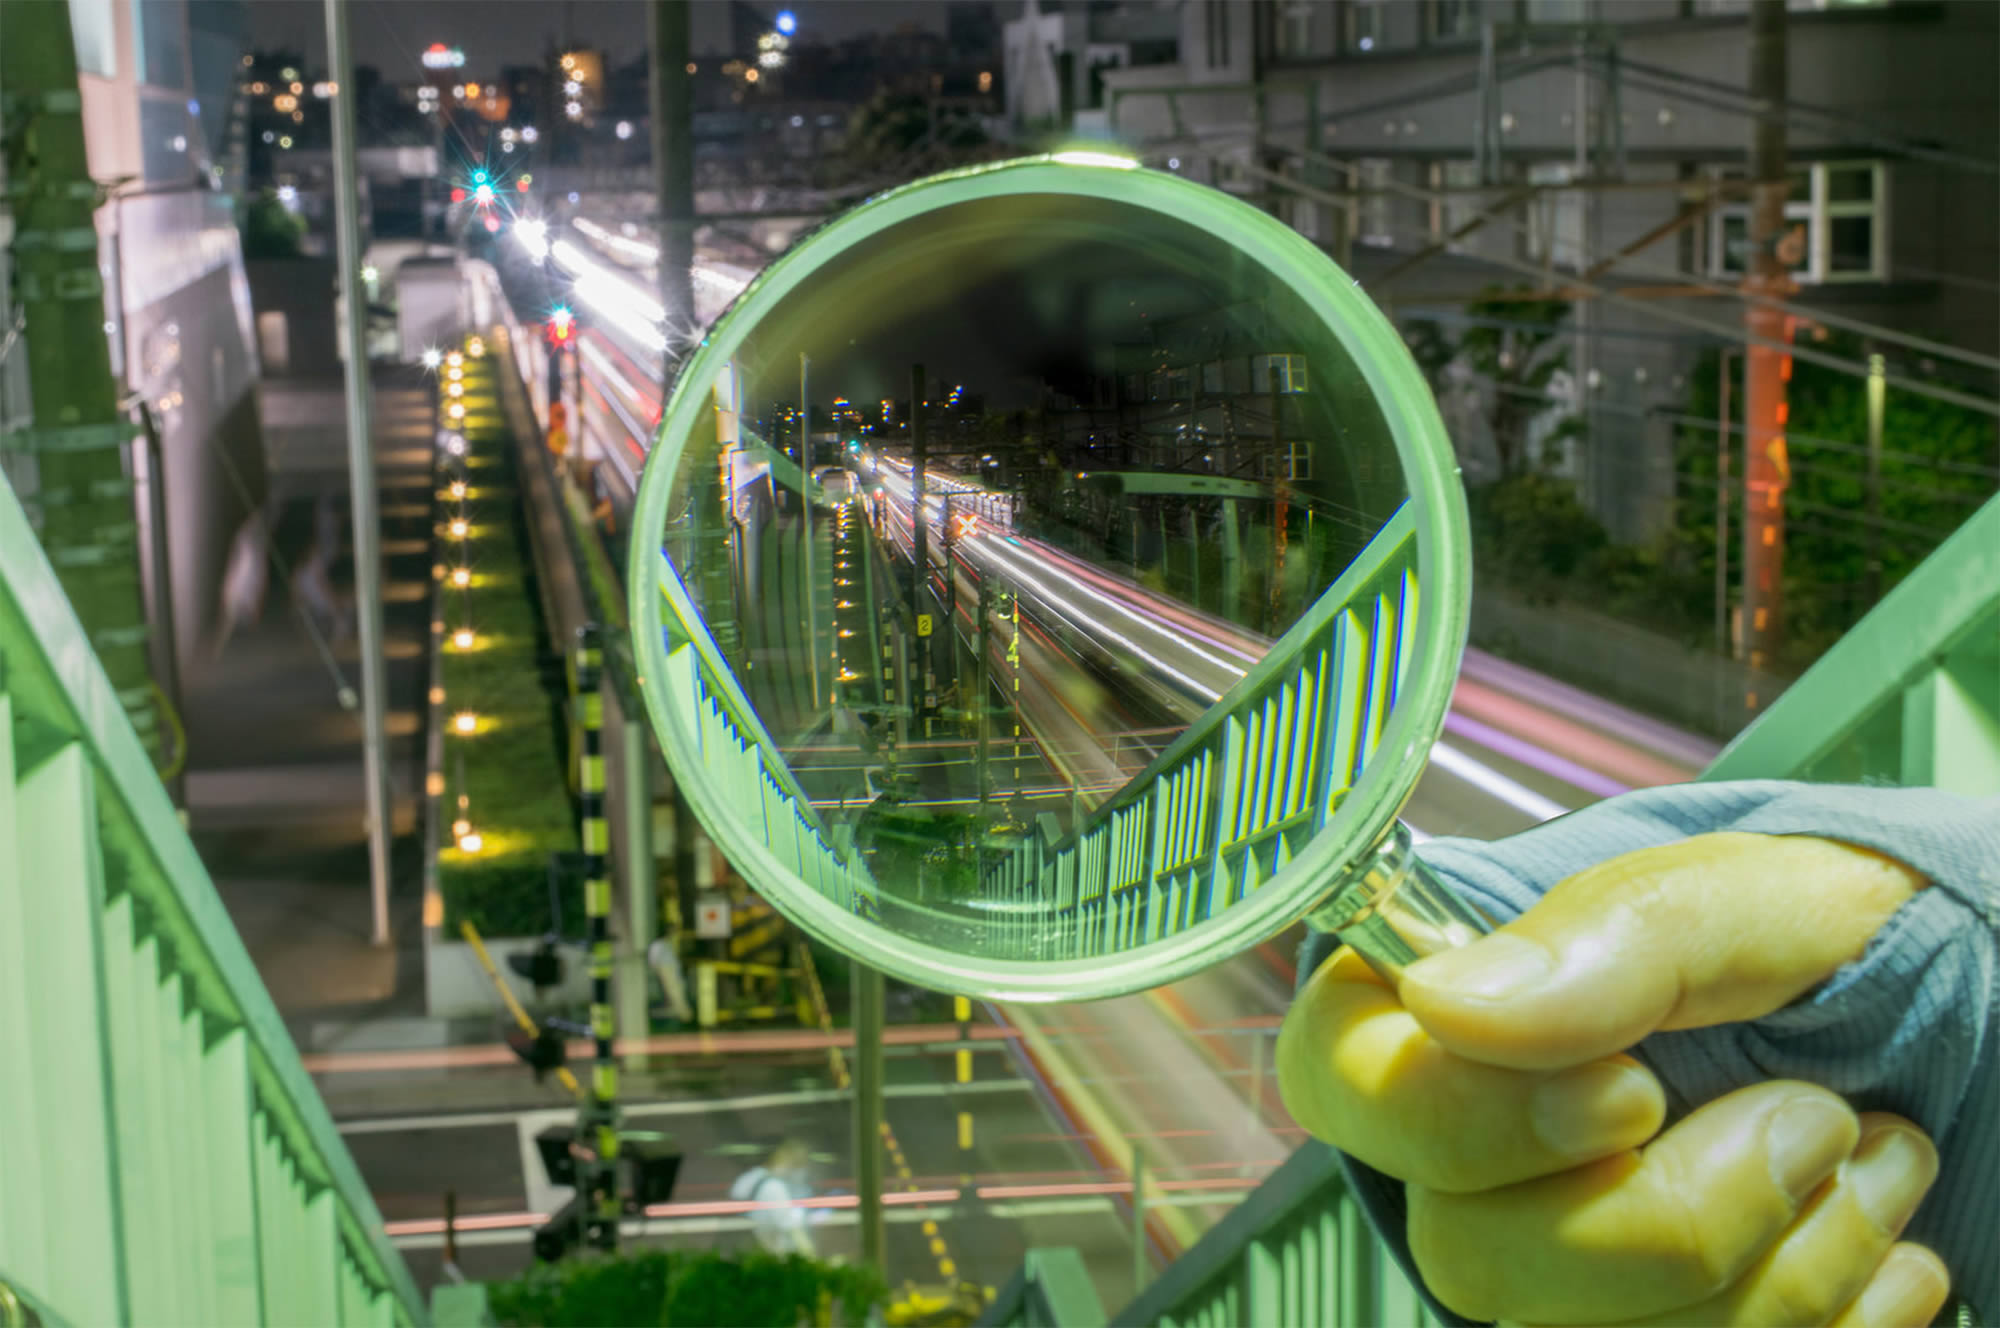 Takashi Kitajima's View of Tokyo Through a Magnifying Glass